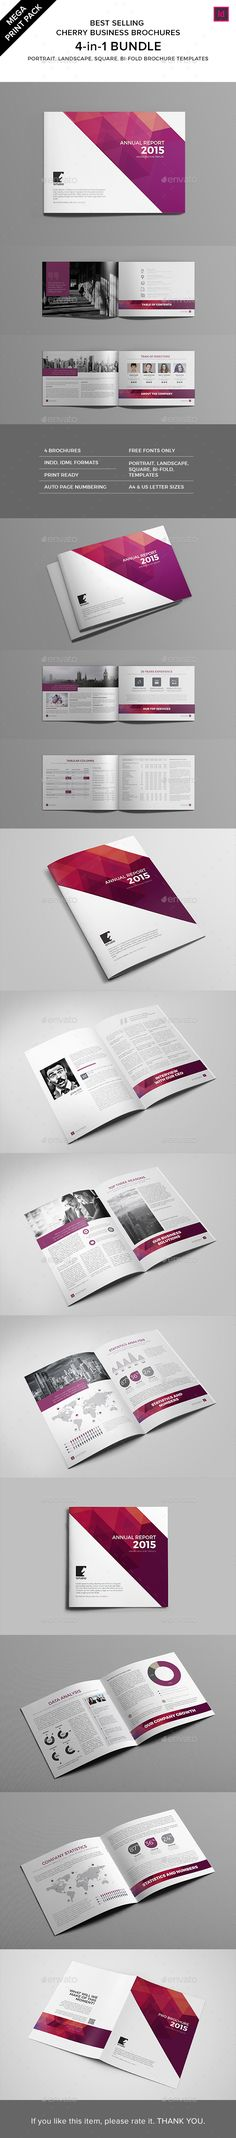 Print Pack :: Cherry Brochures Template InDesign INDD Bundle. Download here: http://graphicriver.net/item/print-pack-cherry-brochures-bundle/15030313?ref=ksioks